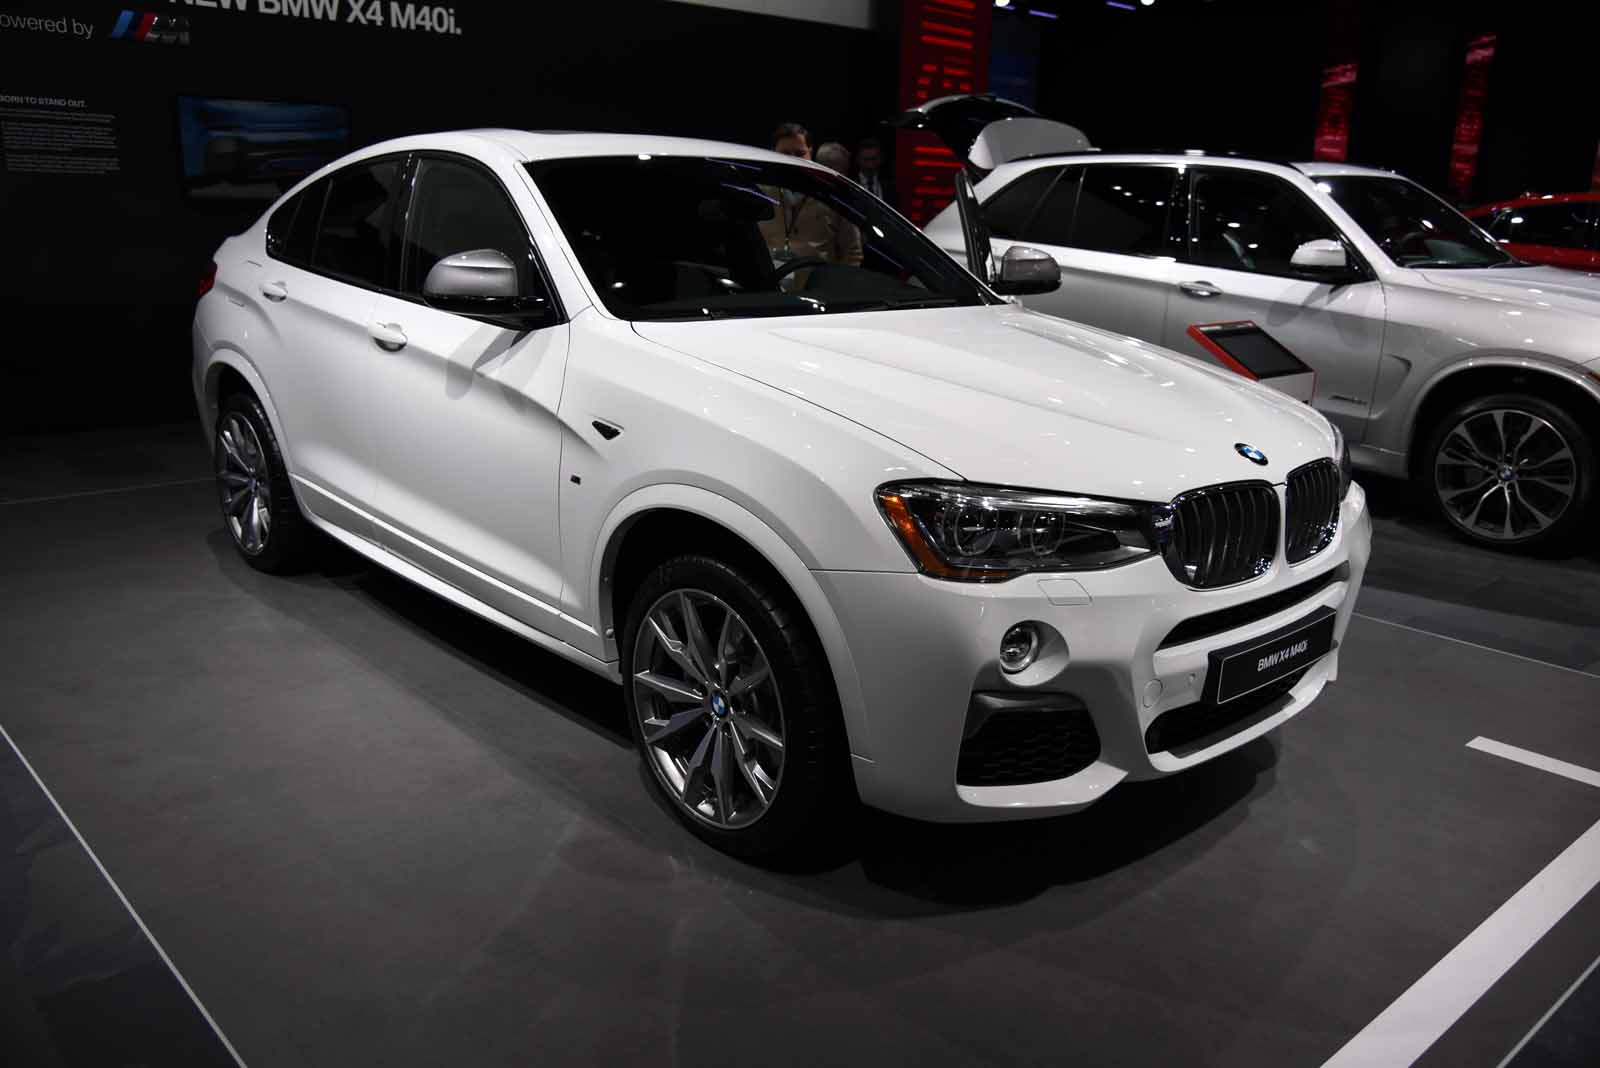 bmw x4 m40i arrives as a sporty suv with 355 hp. Black Bedroom Furniture Sets. Home Design Ideas